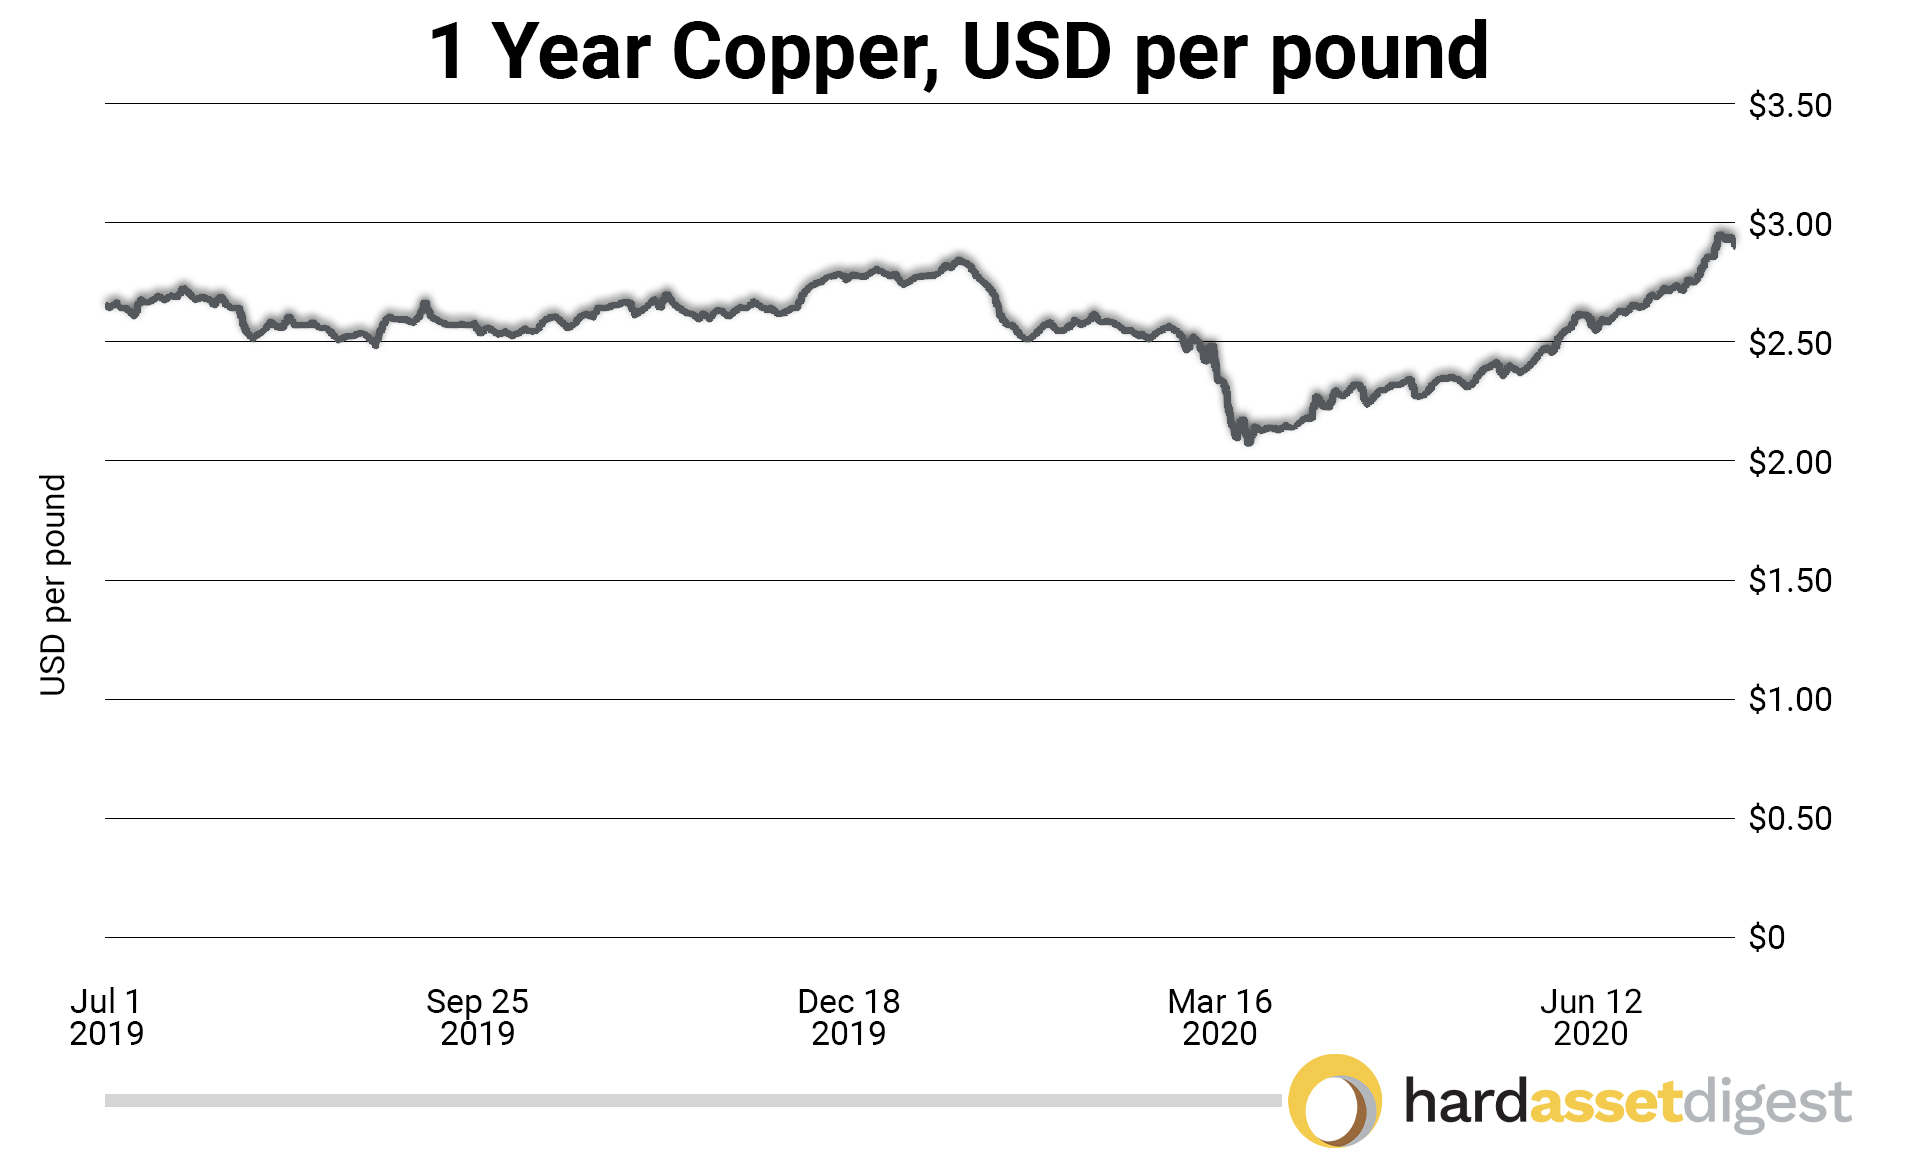 1 year copper per pound